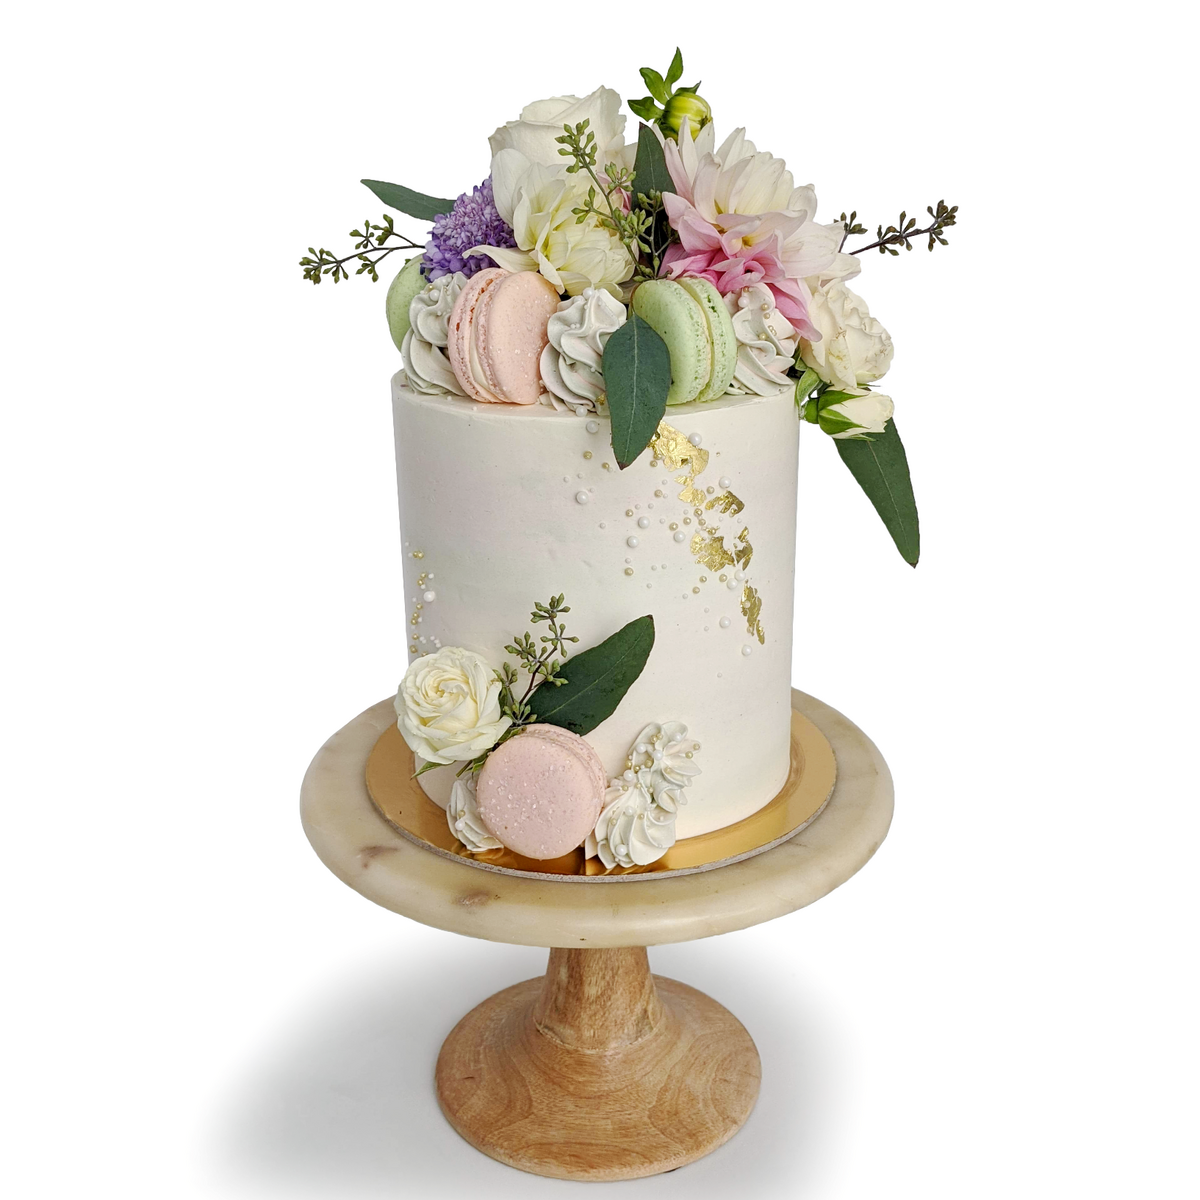 Whippt Kitchen - Floral Macaron Cake garden Party 2